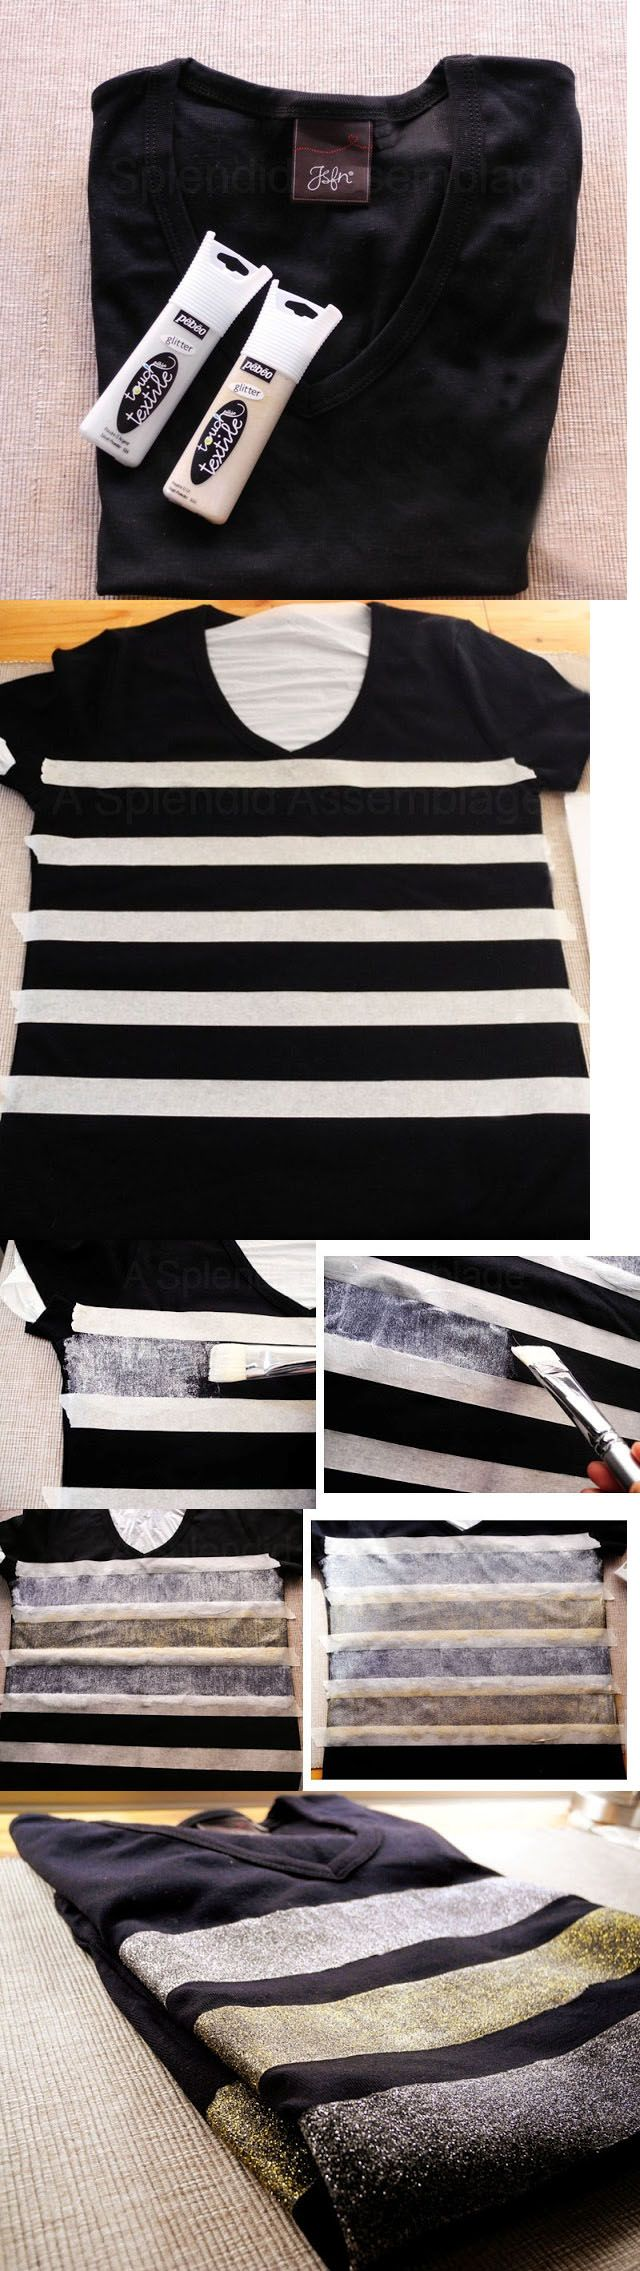 DIY Clothes | Fashionista Pieces - I would do one vertical stripe down the middle: DIY Clothes | Fashionista Pieces - I would do one vertical stripe down the middle